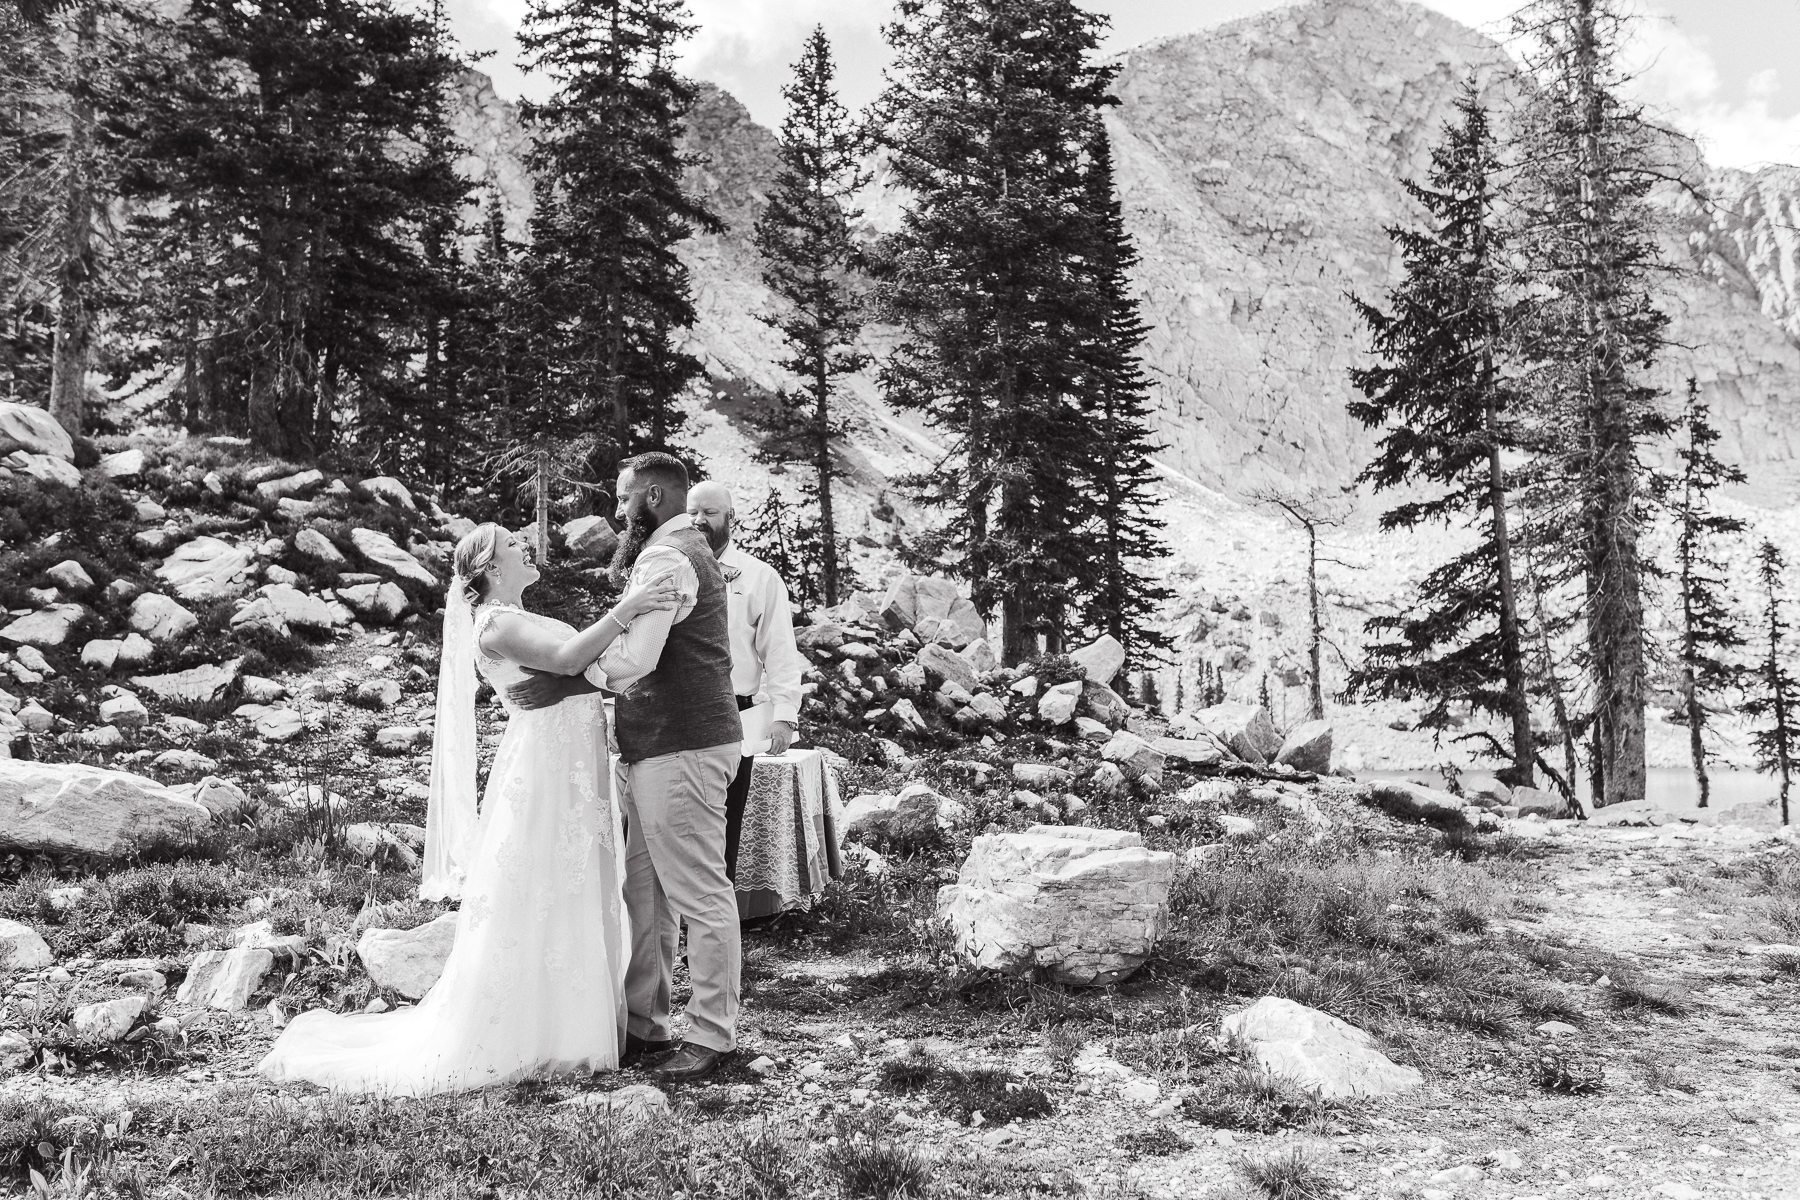 Intimate ceremony in The Snowy Range Mountains by Wyoming based photographer, Megan Lee Photography